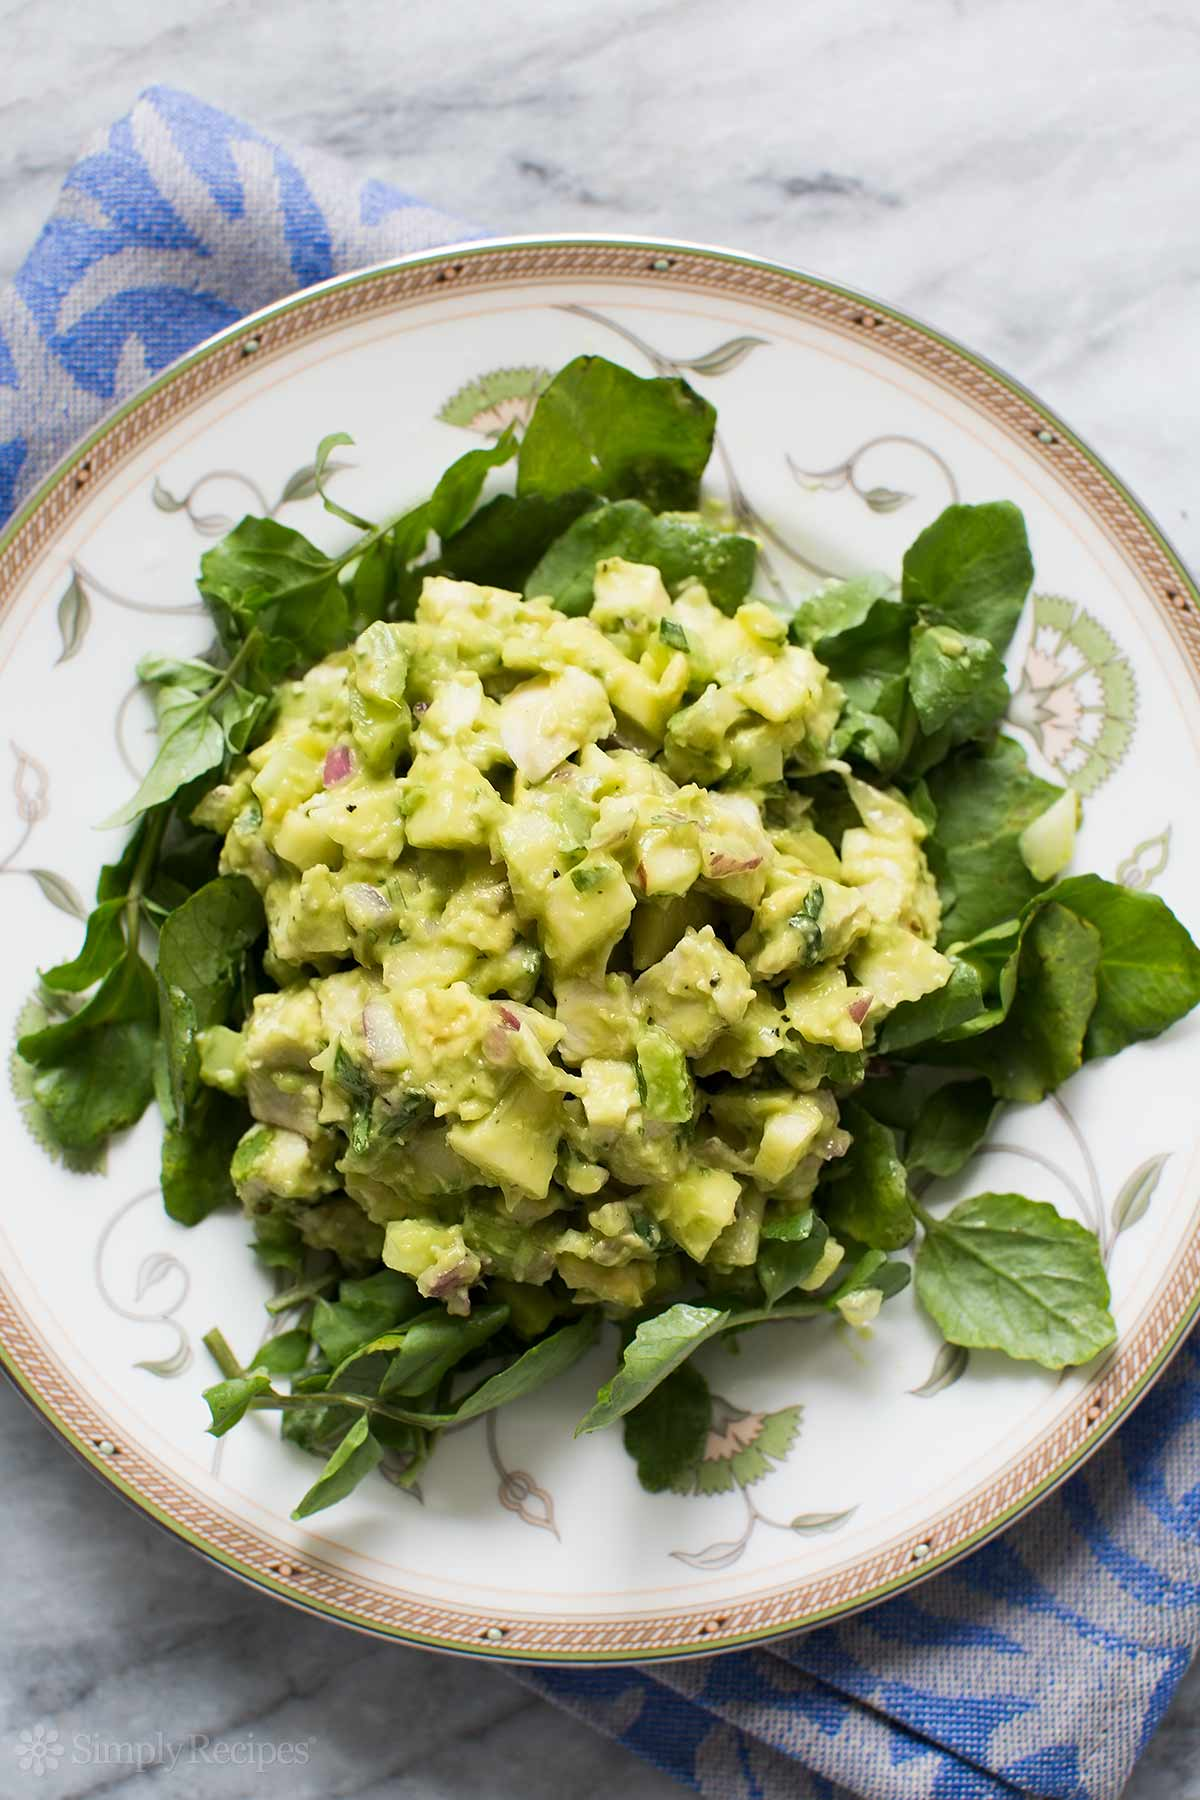 ... amazing avocado chicken salad recipe is a great healthy alternative